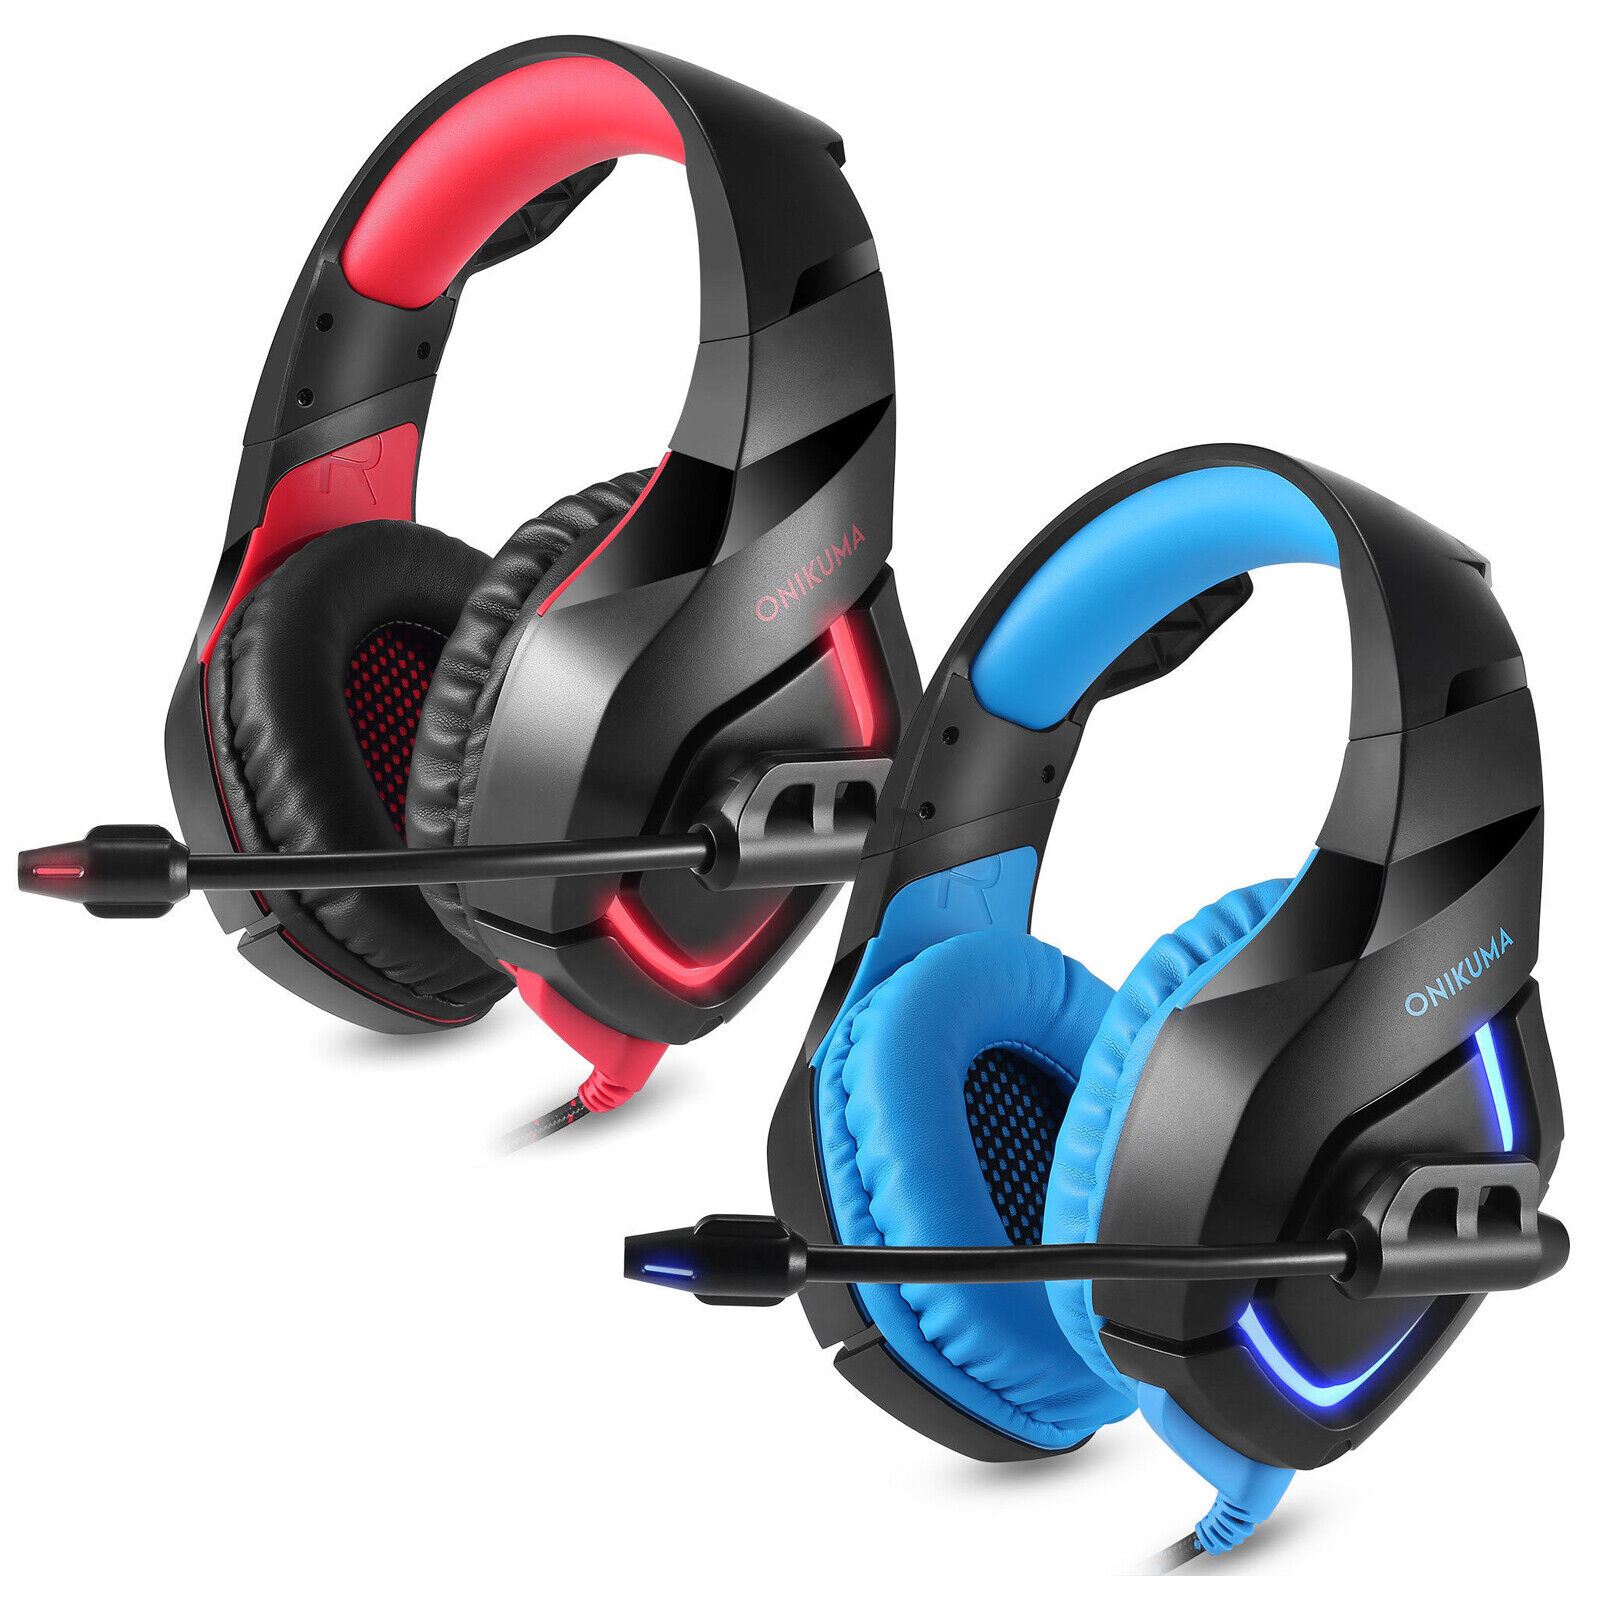 USA ONIKUMA K1 Stereo Bass Surround Gaming Headset with Mic for PS4 Xbox One PC